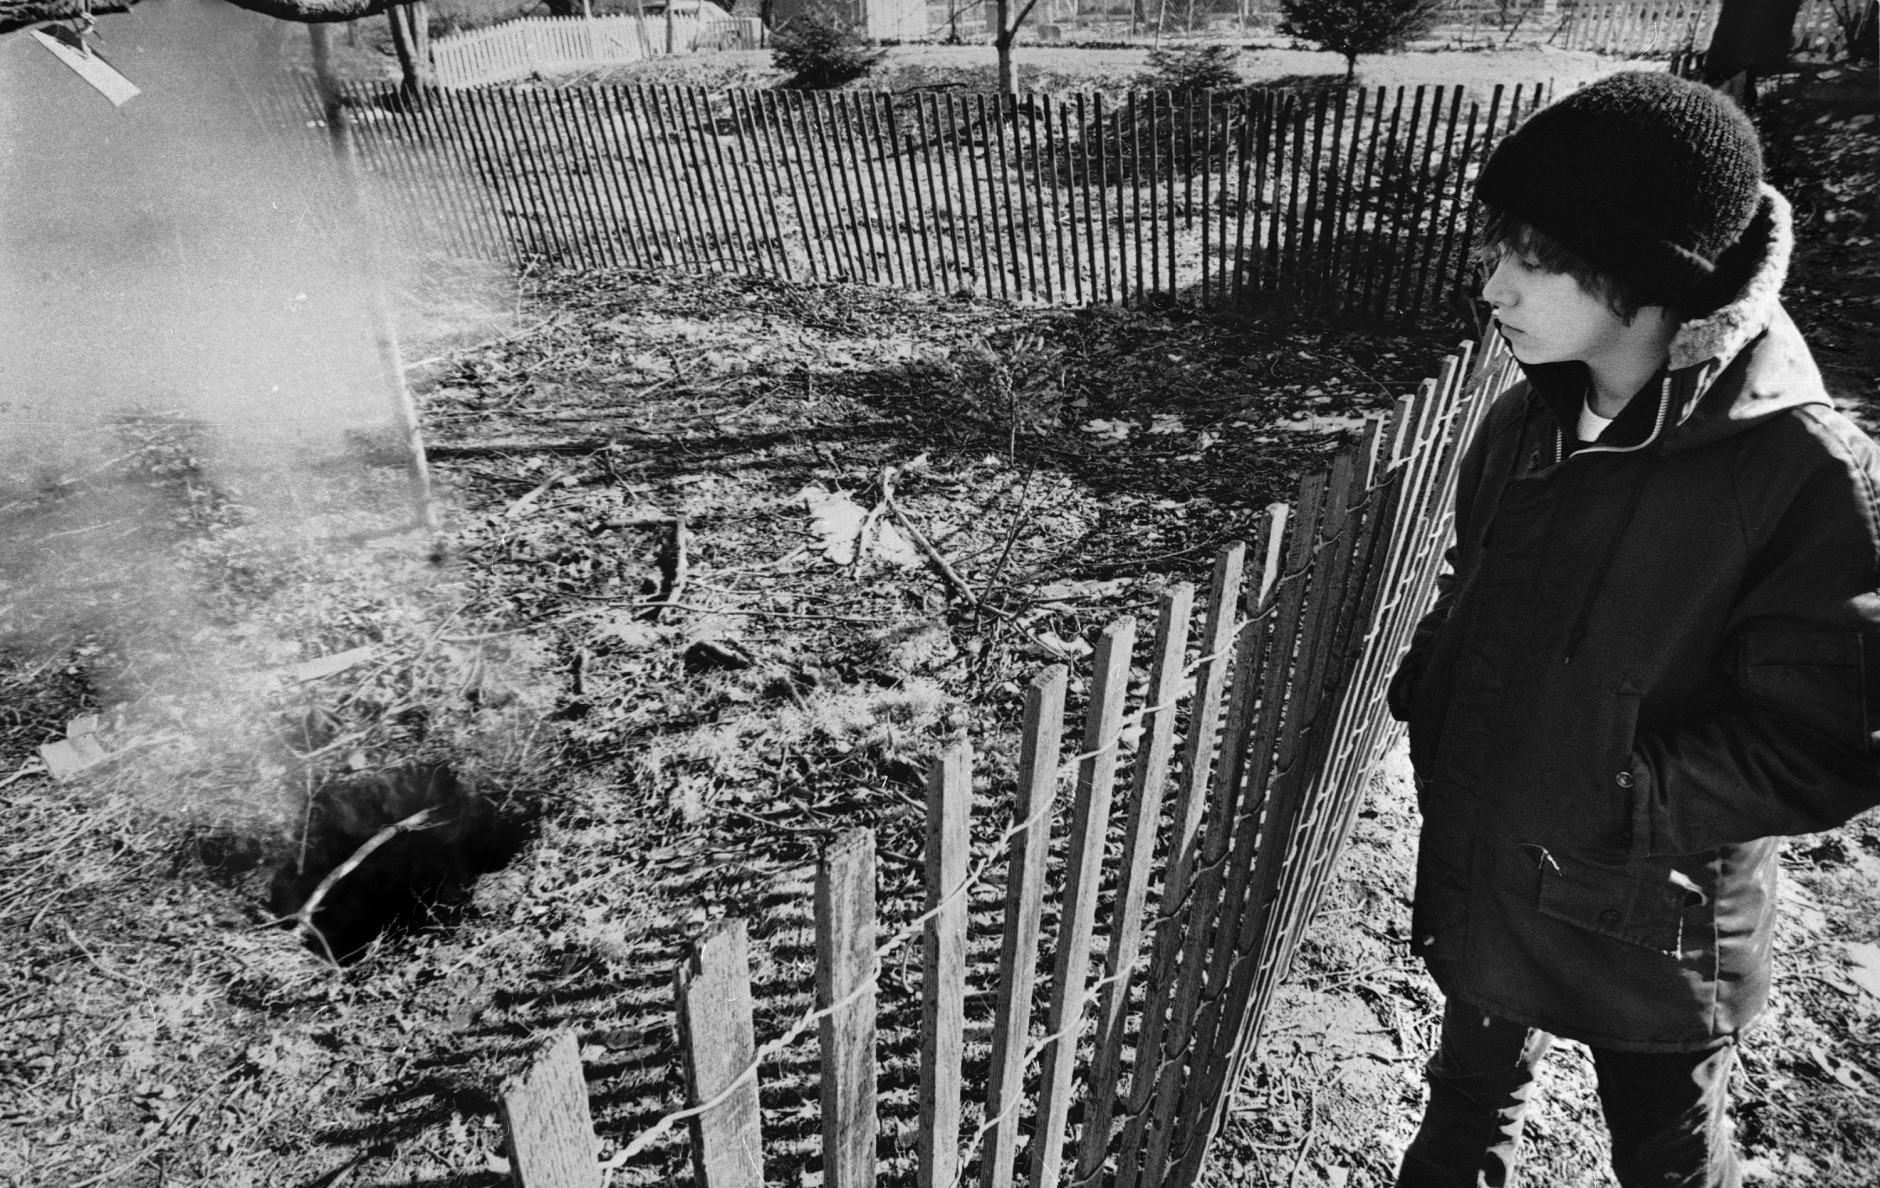 Twelve year old Todd Domboski of Centralia, Pennsylvania, looks over a police barricade at the hole he fell through just hours before photo was taken on Feb. 14, 1981 in Centralia. The hole was caused by a mine fire that?s been burning since 1962. (AP Photo)